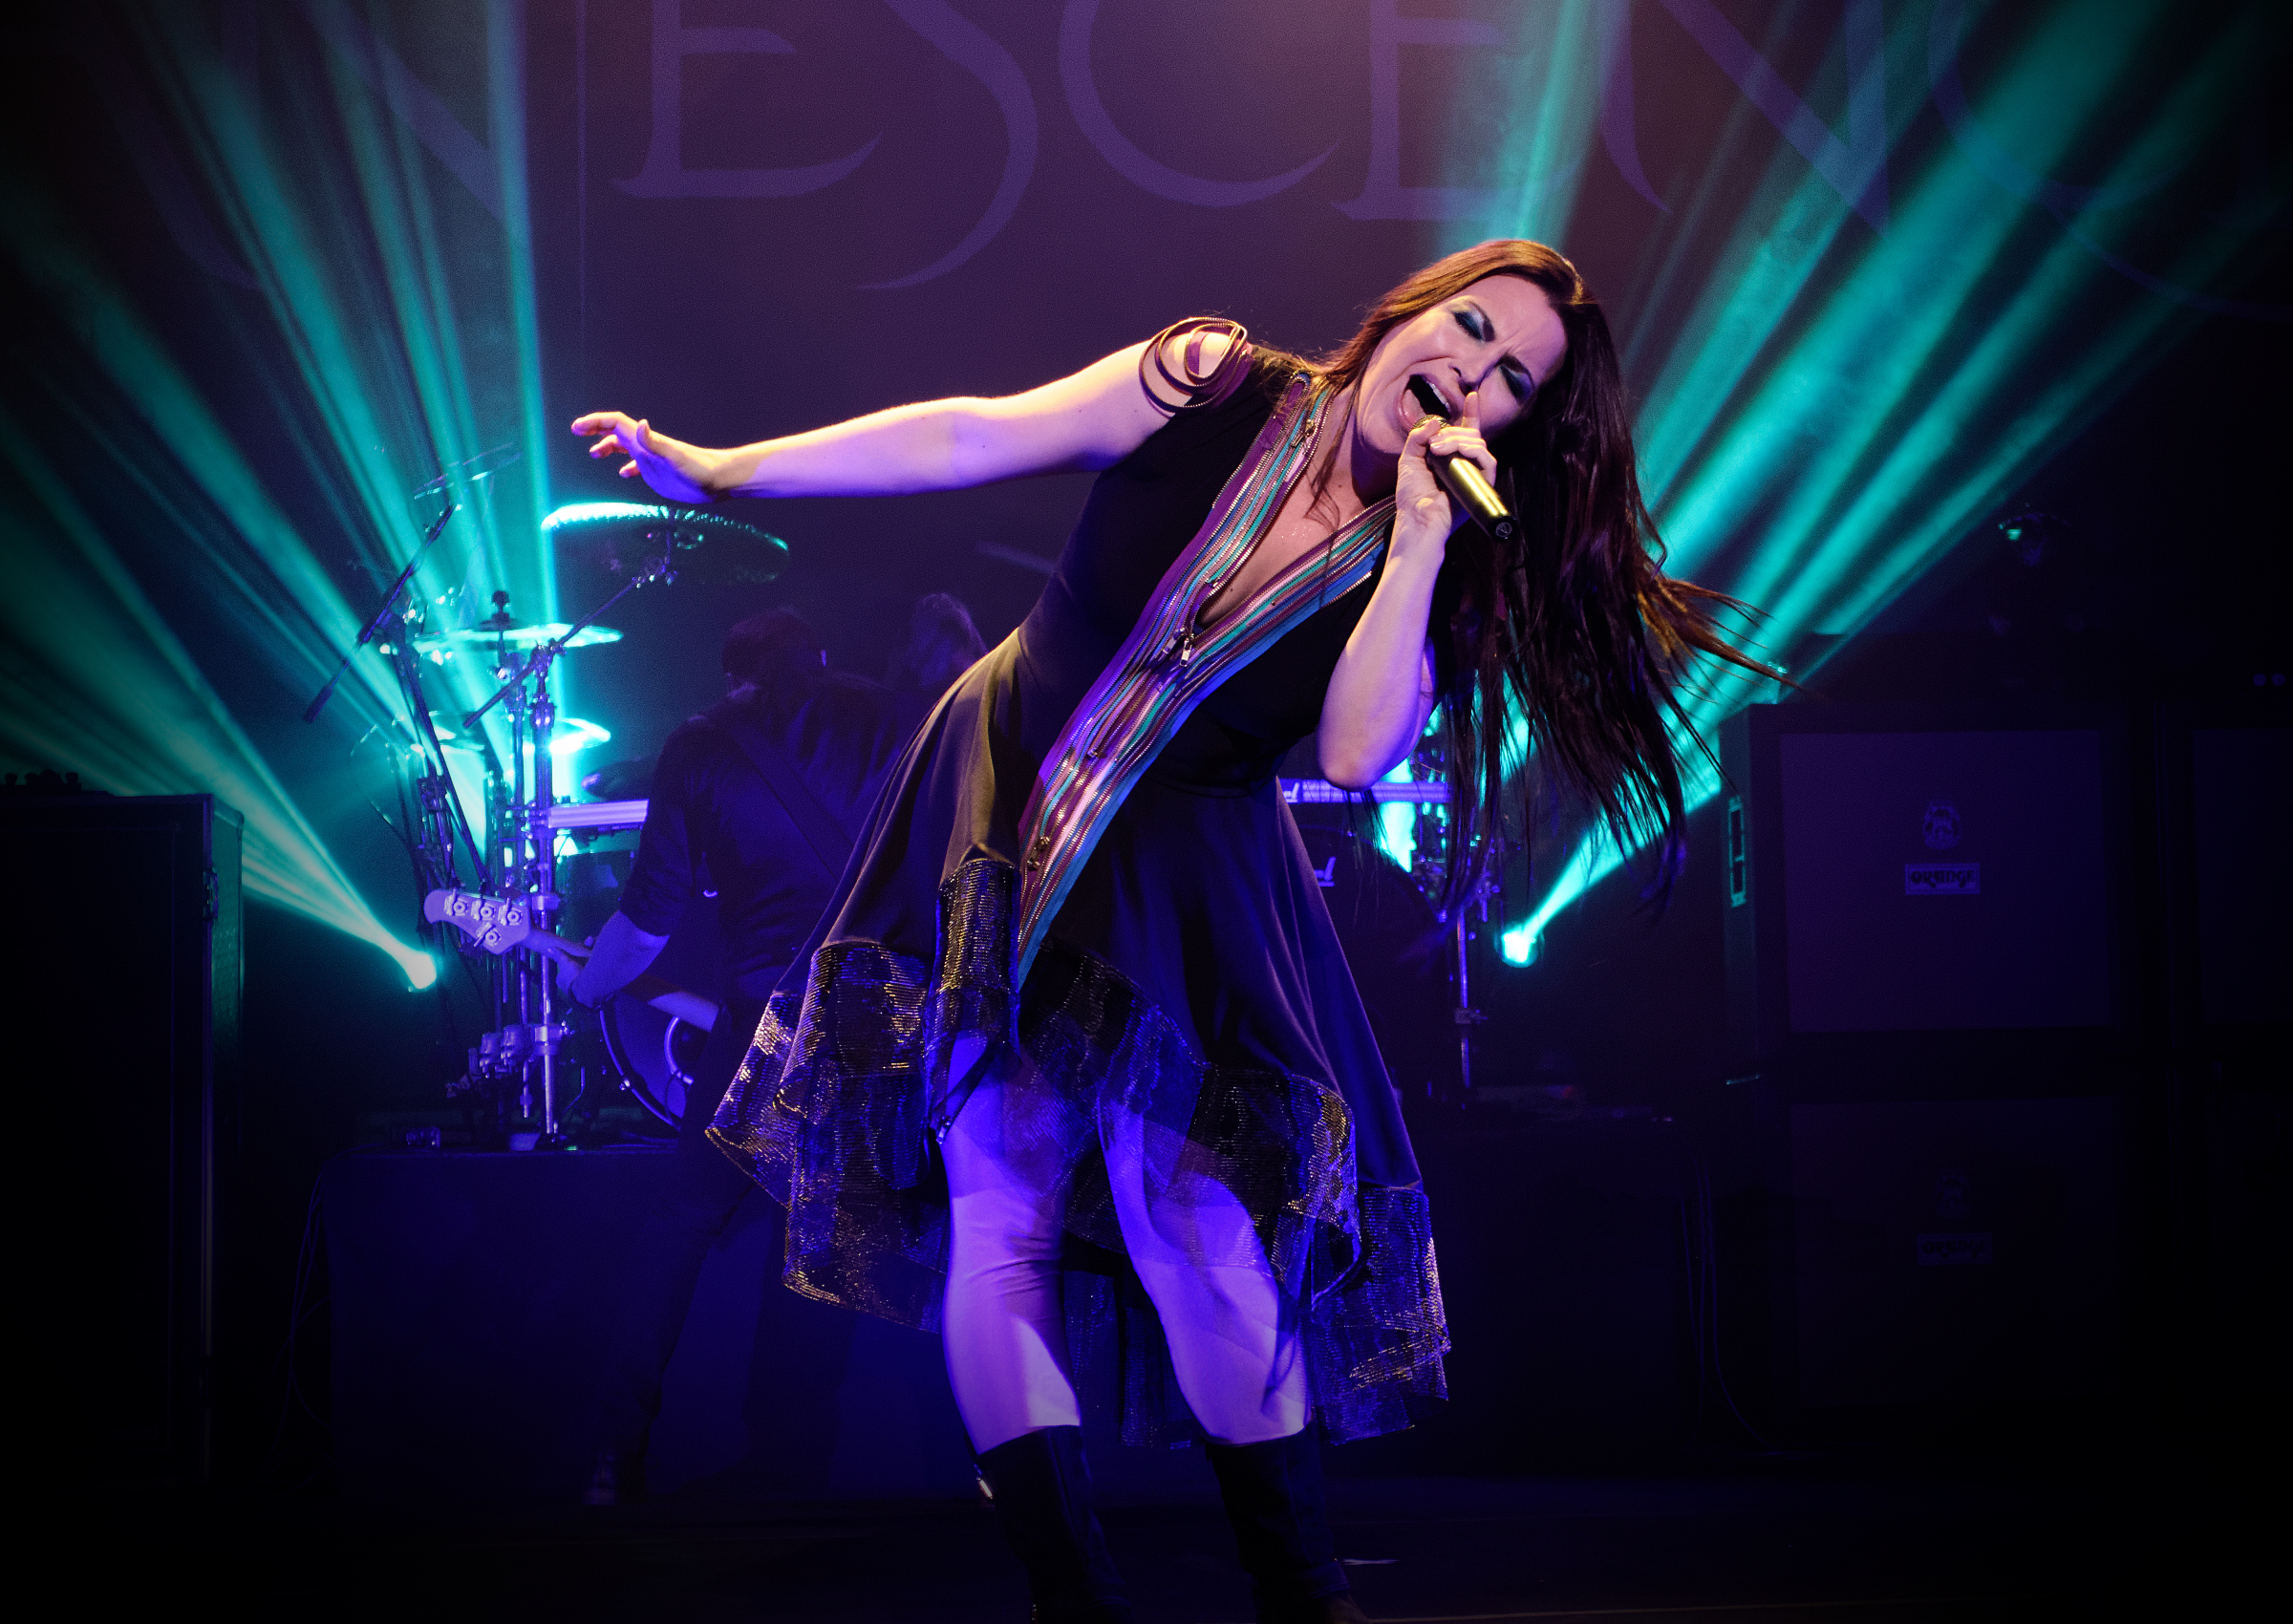 File:Evanescence at The Wiltern theatre in Los Angeles, California 02.jpg -  Wikimedia Commons